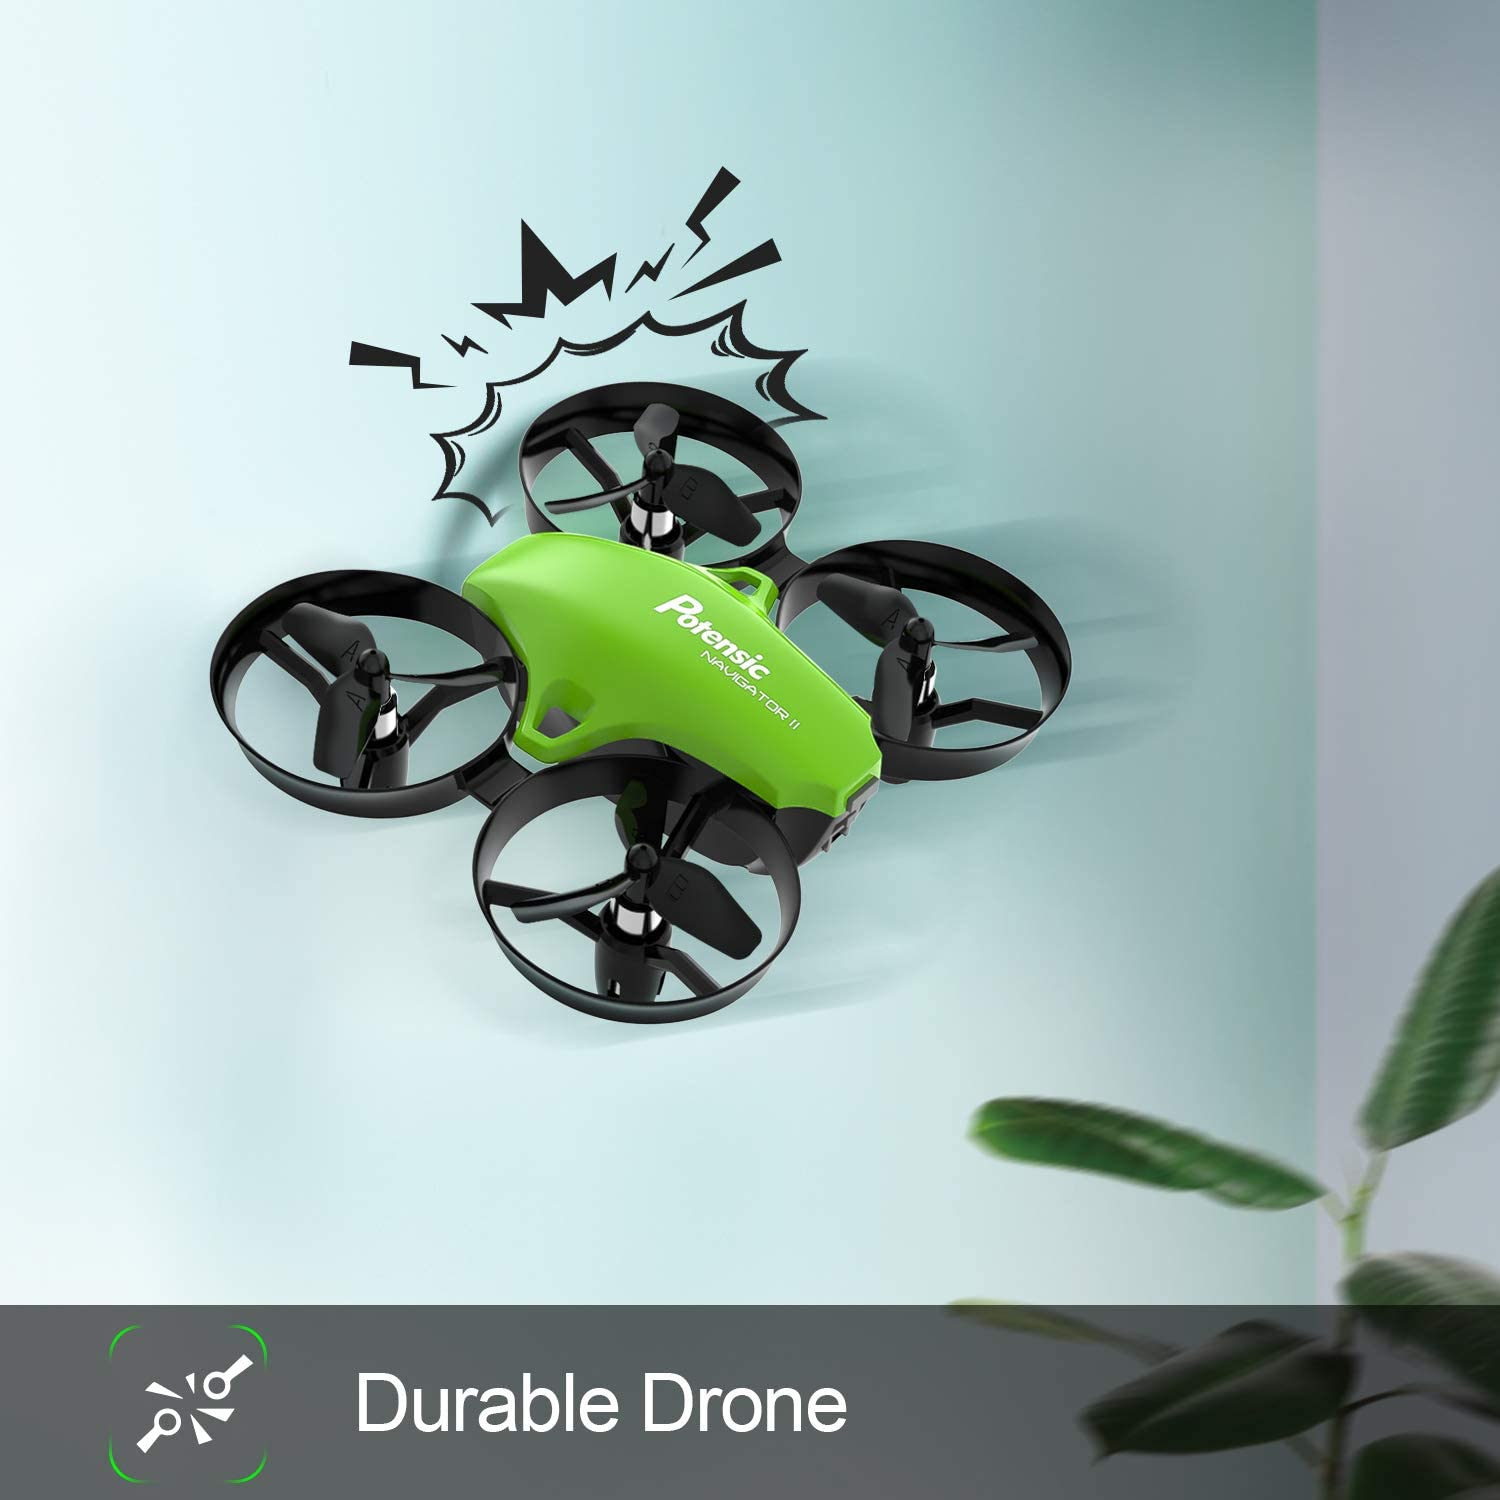 Potensic A20 Mini Drone is the durable rc nano quadcopter in my review